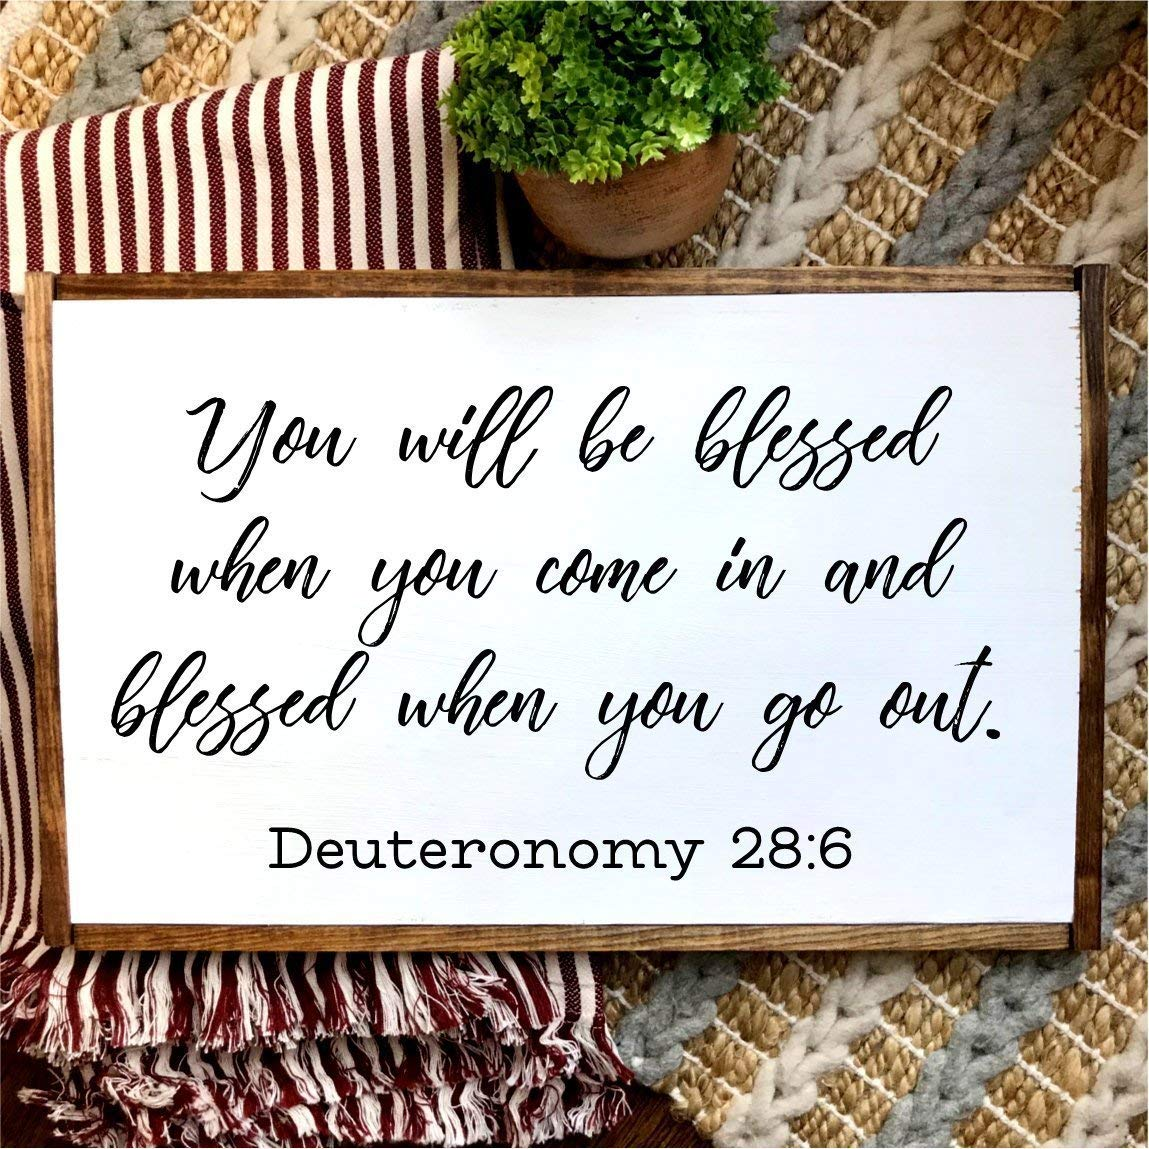 You will be blessed when you come in and blessed when you go out | Deuteronomy 28:6 | Christian art | Hand-painted Over-sized Wooden Sign | Modern Farmhouse Style | Fixer Upper inspired home decor